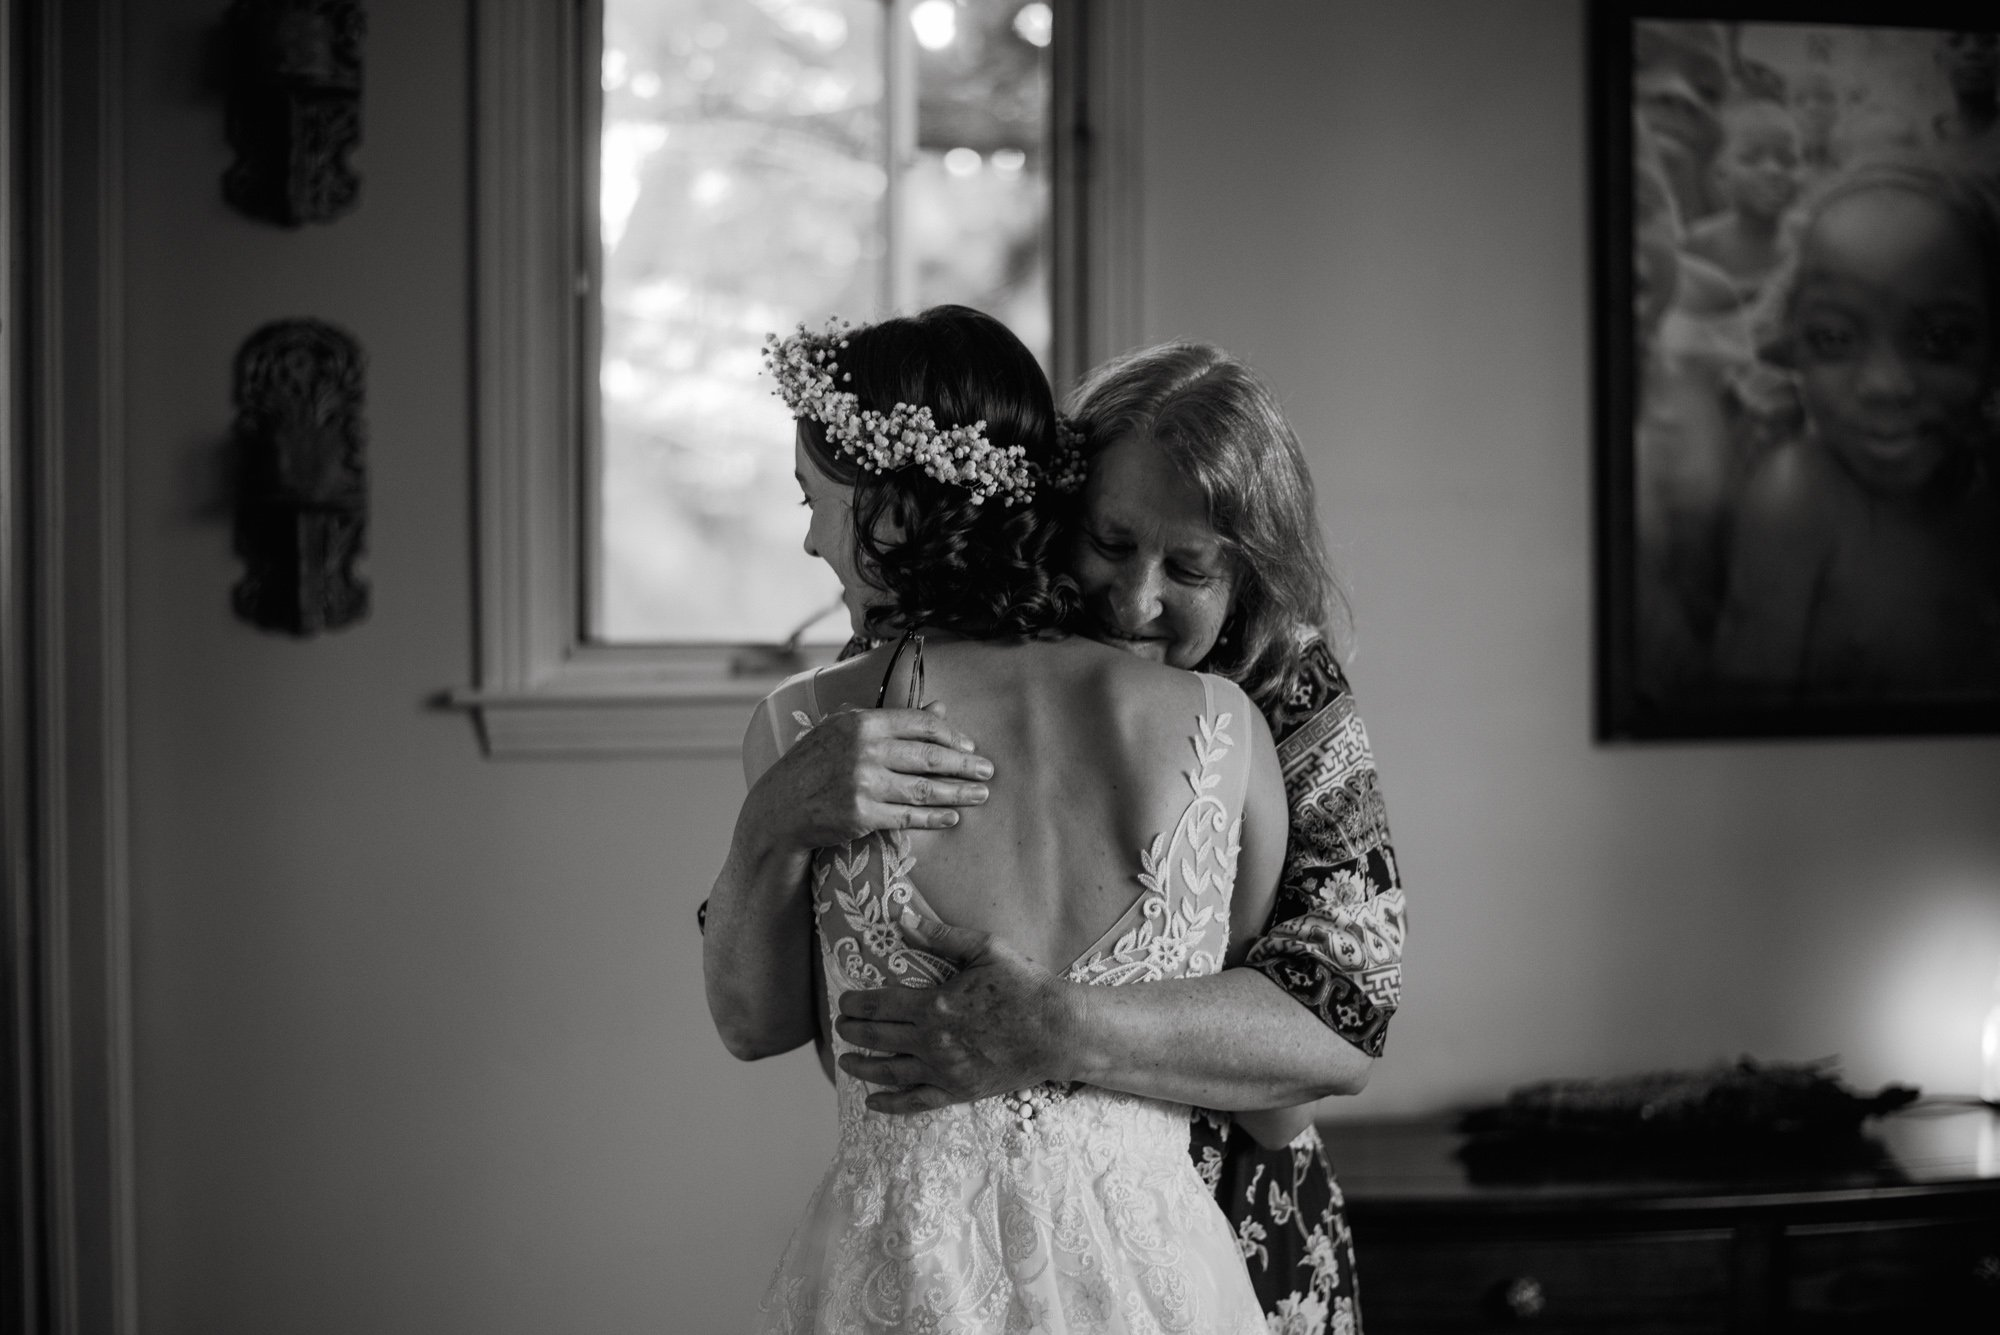 emotional wedding photography in austin texas